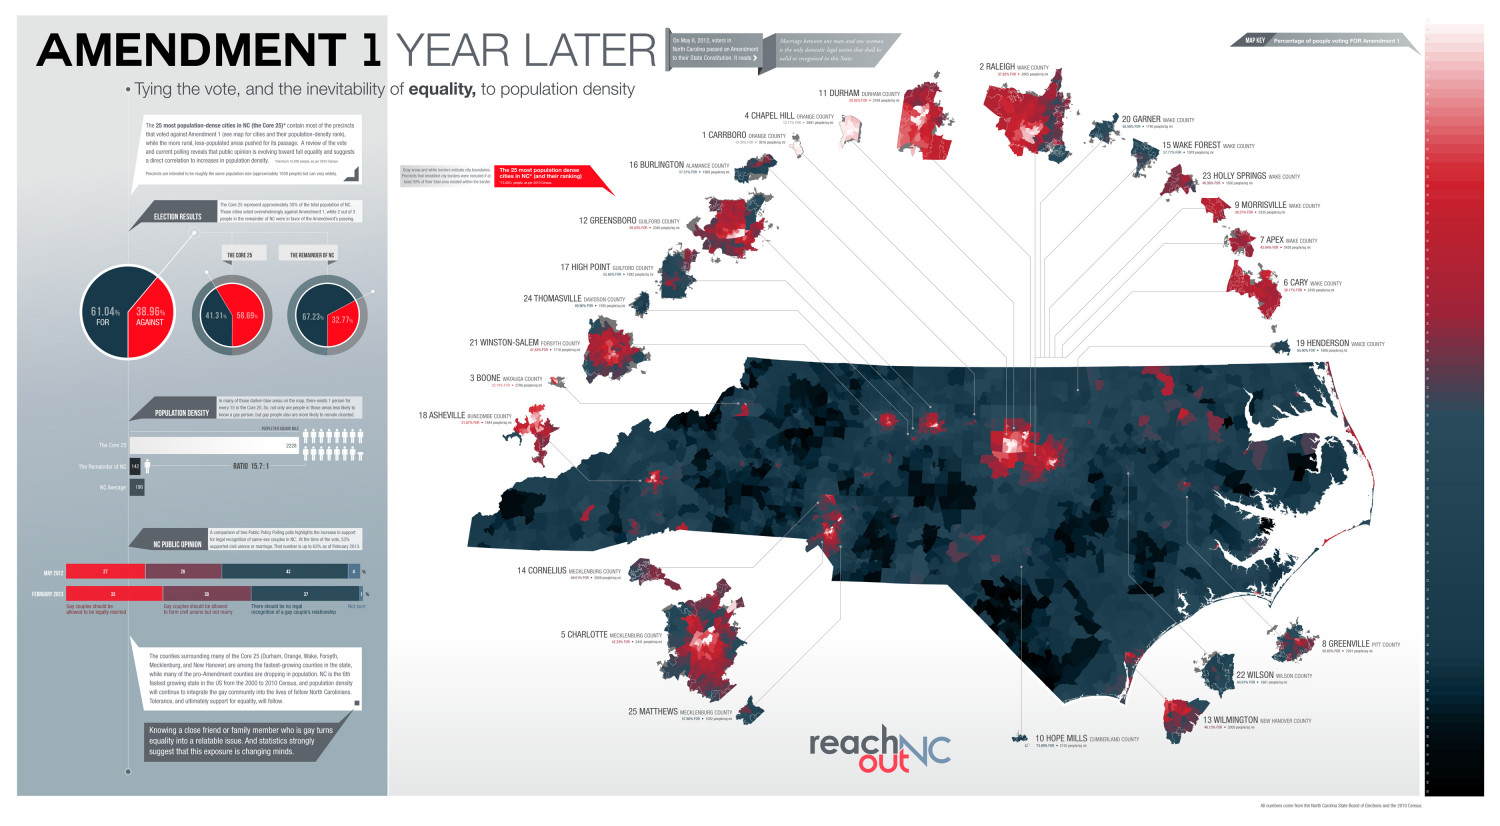 Amendment 1 Year Later (NC) Infographic